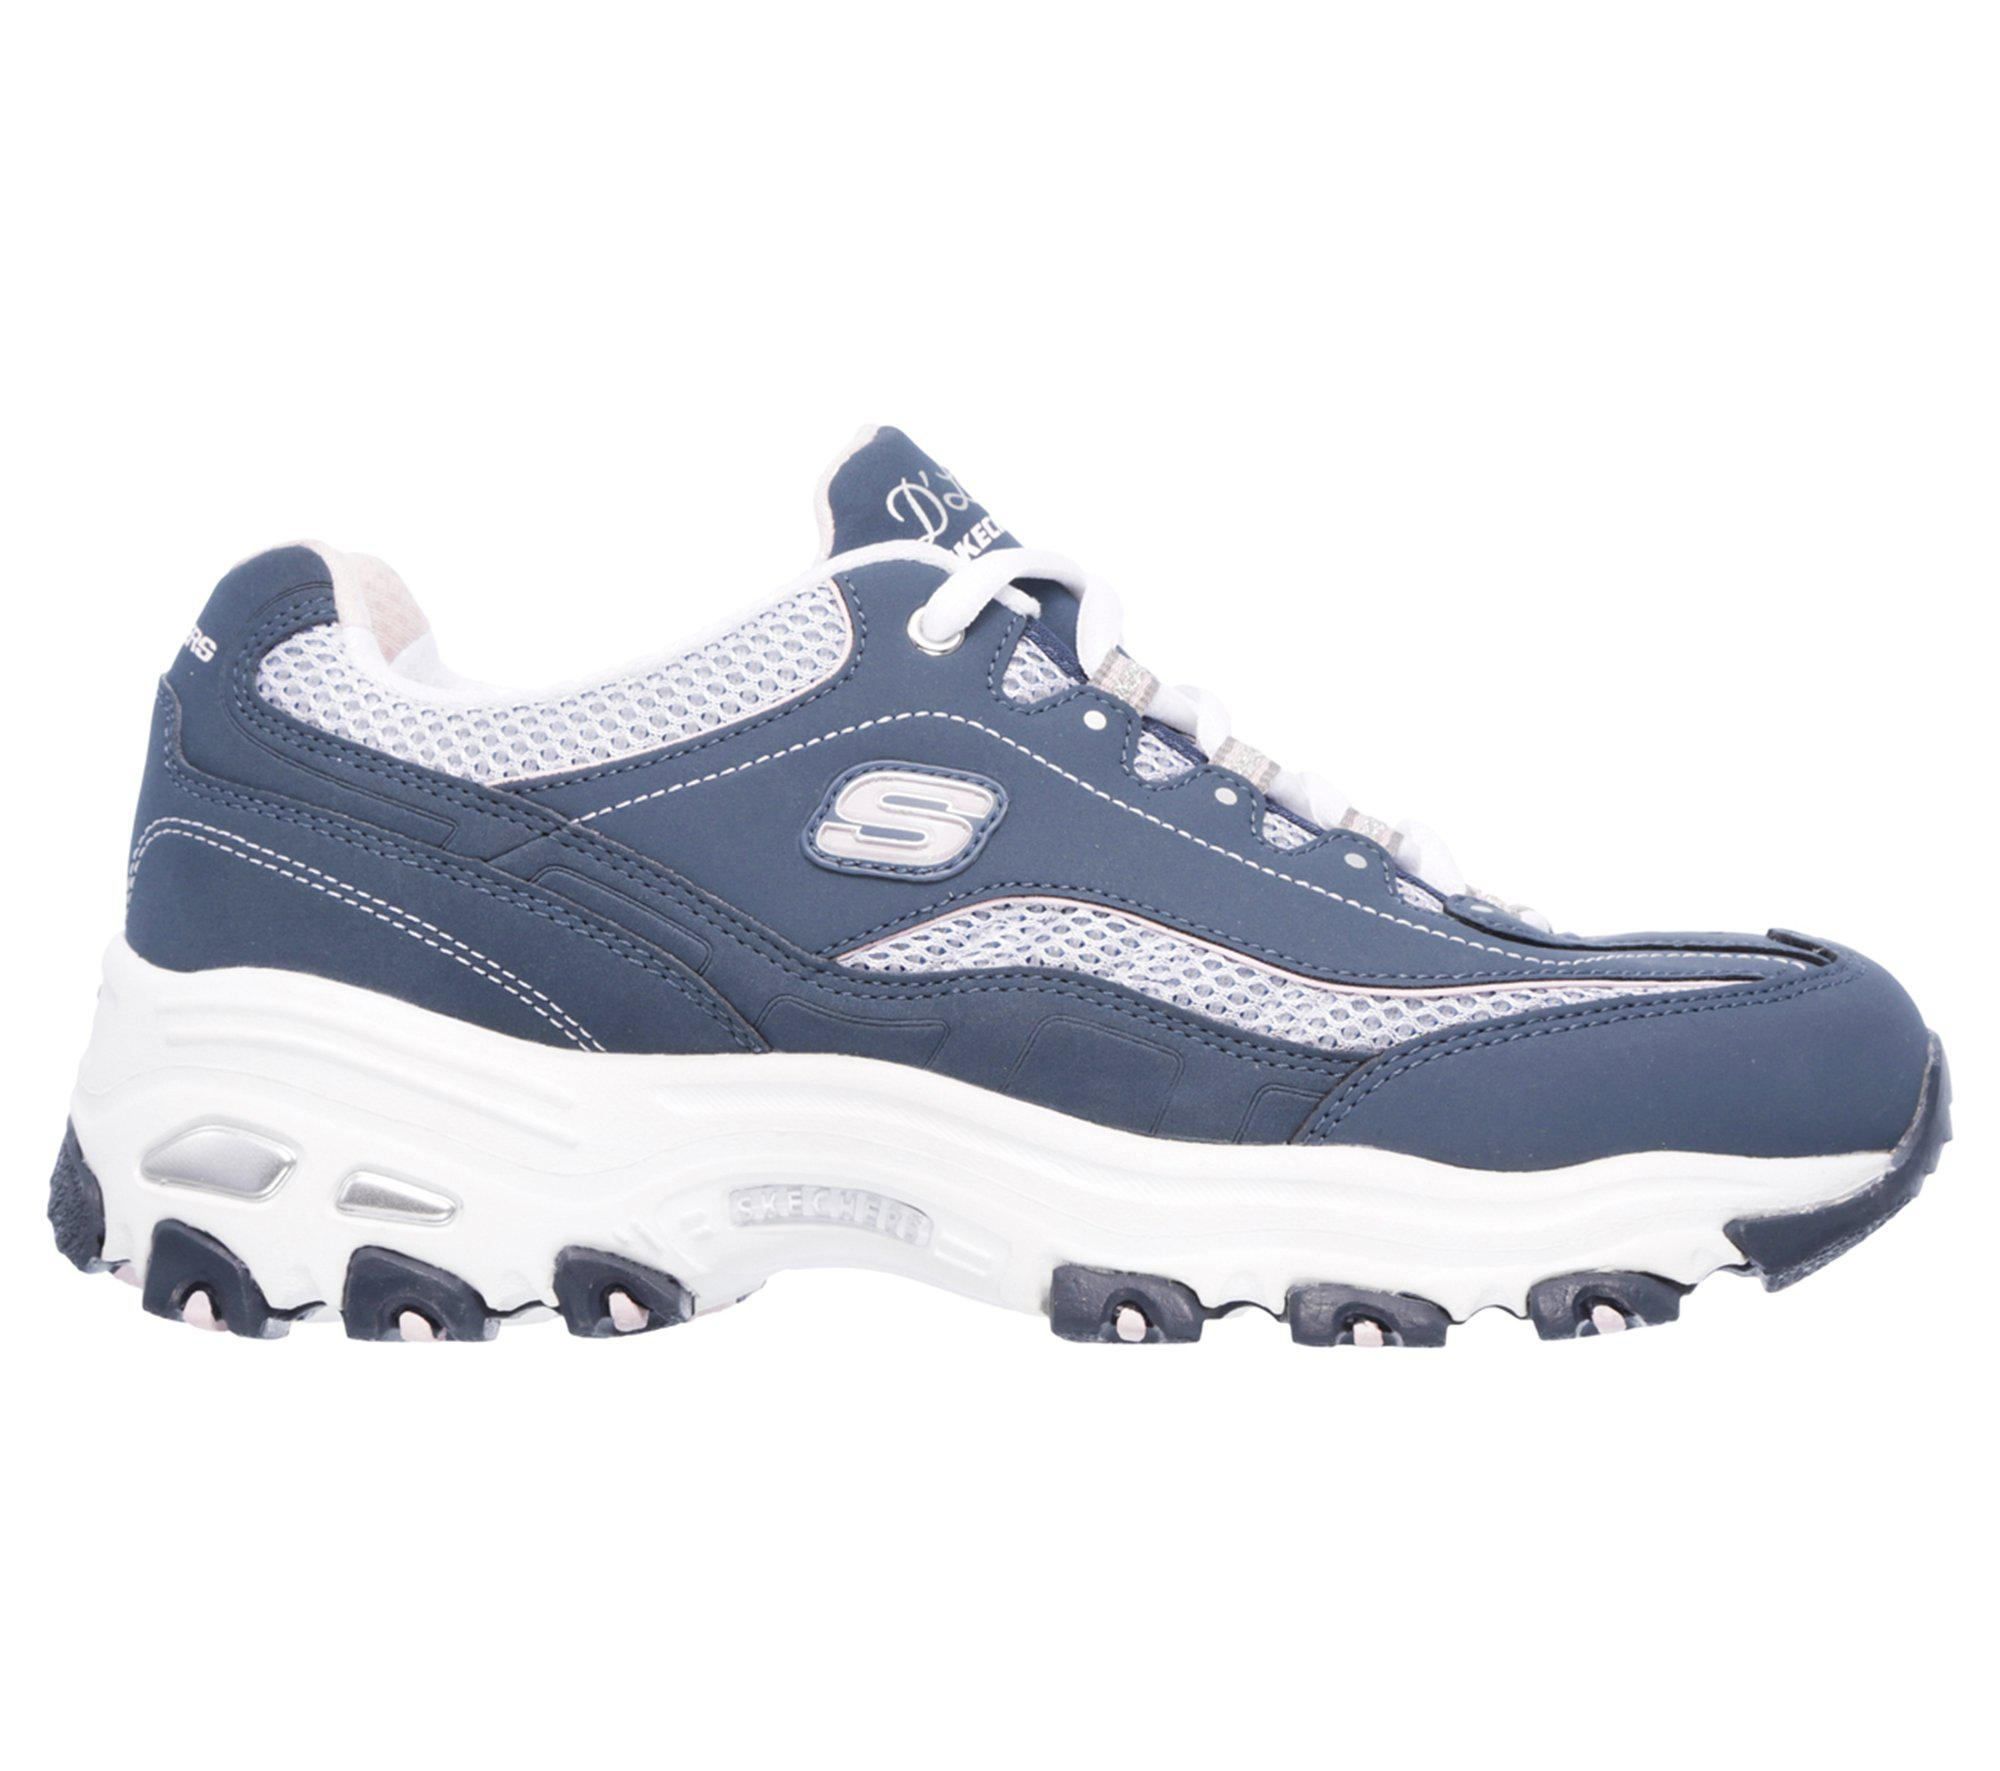 a85a806b5b83 Lyst - Skechers D  lites - Life Saver in Blue